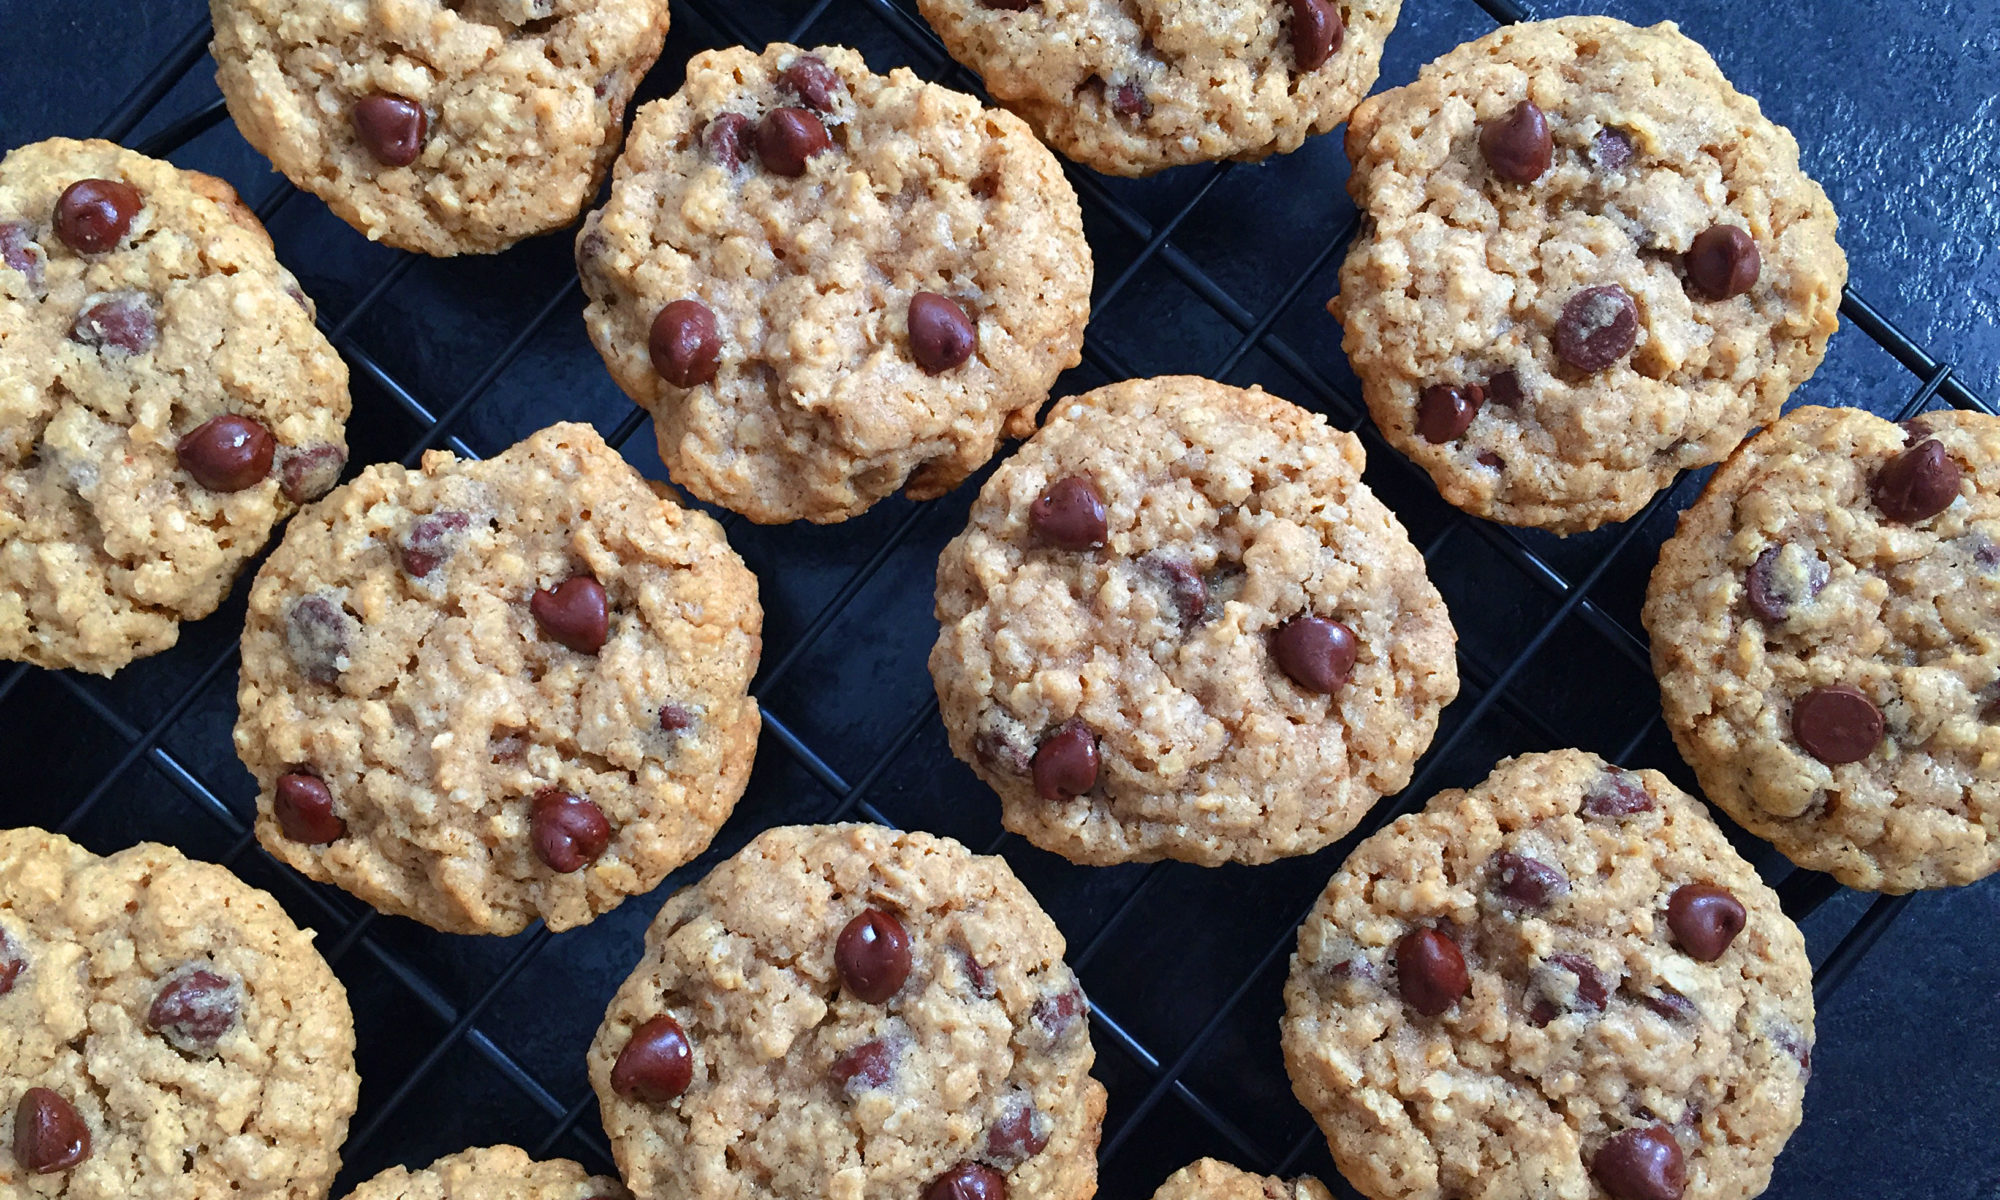 fresh baked chocolate chip oatmeal cookies